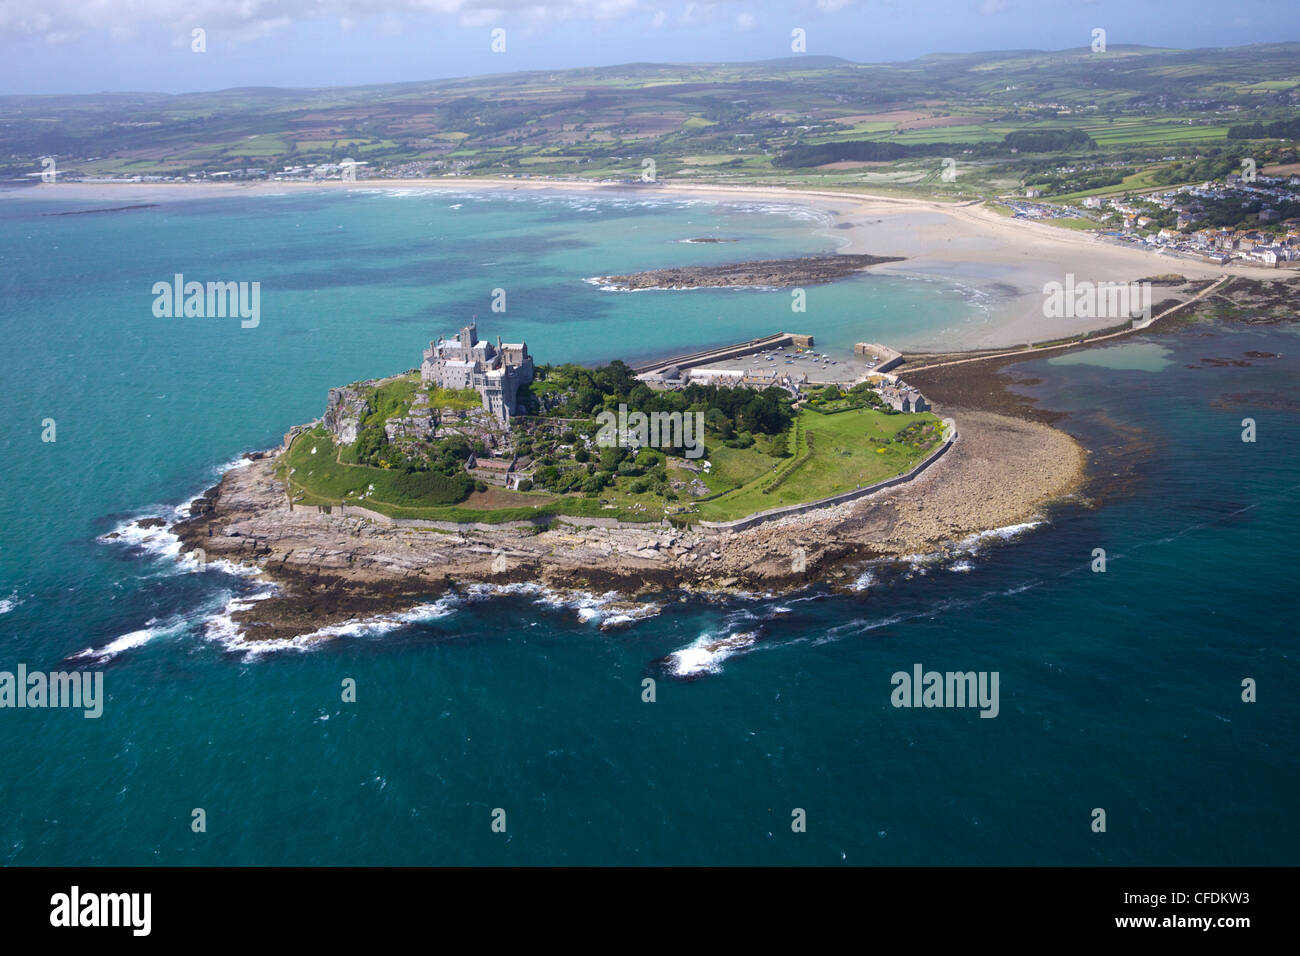 Maine Fall Foliage Wallpaper Aerial View Of St Michael S Mount Penzance Lands End